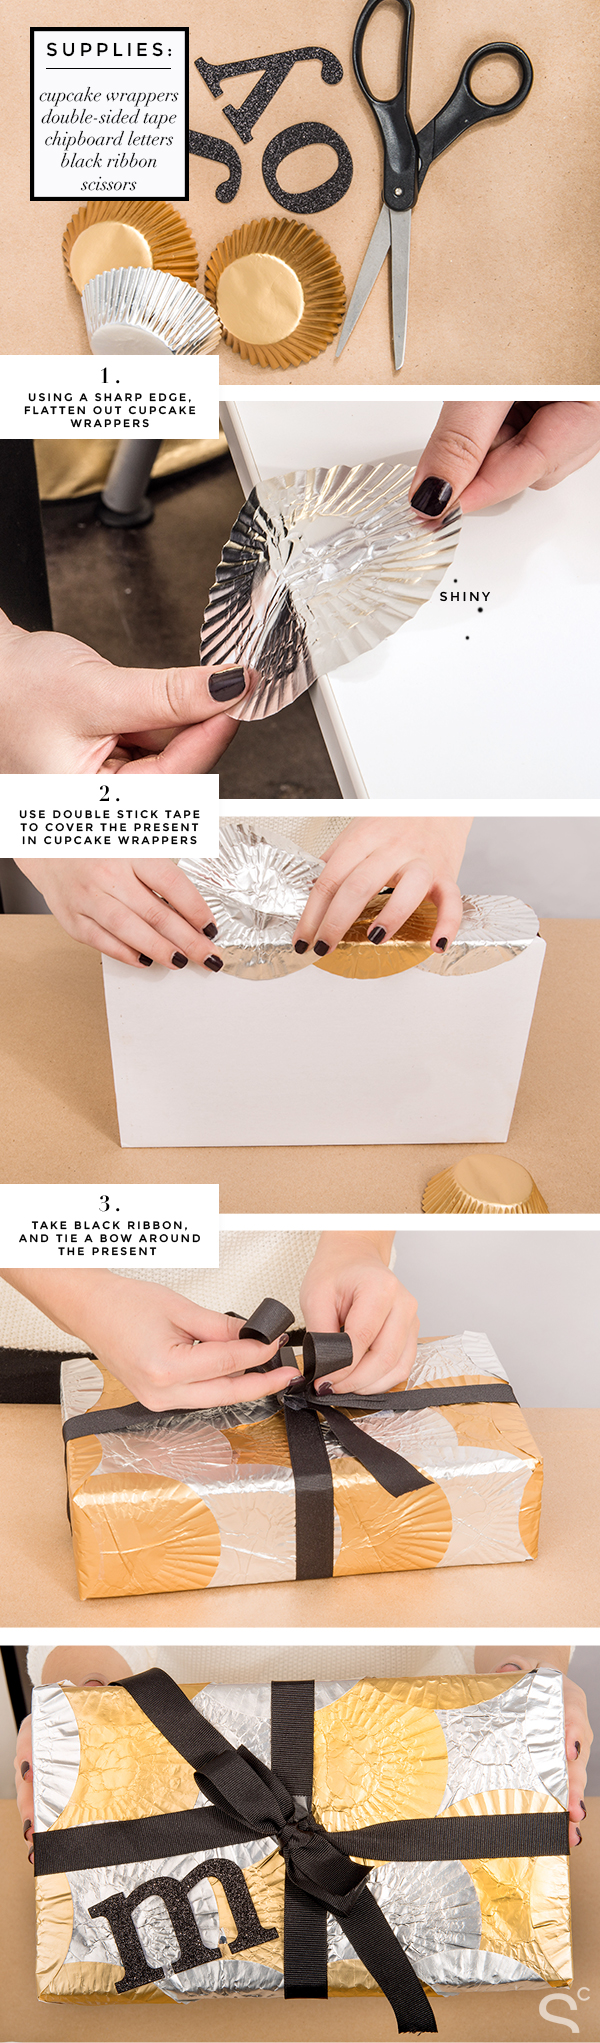 DIY-Gift-Wrapping-Ideas-Cupcake-Wrapper